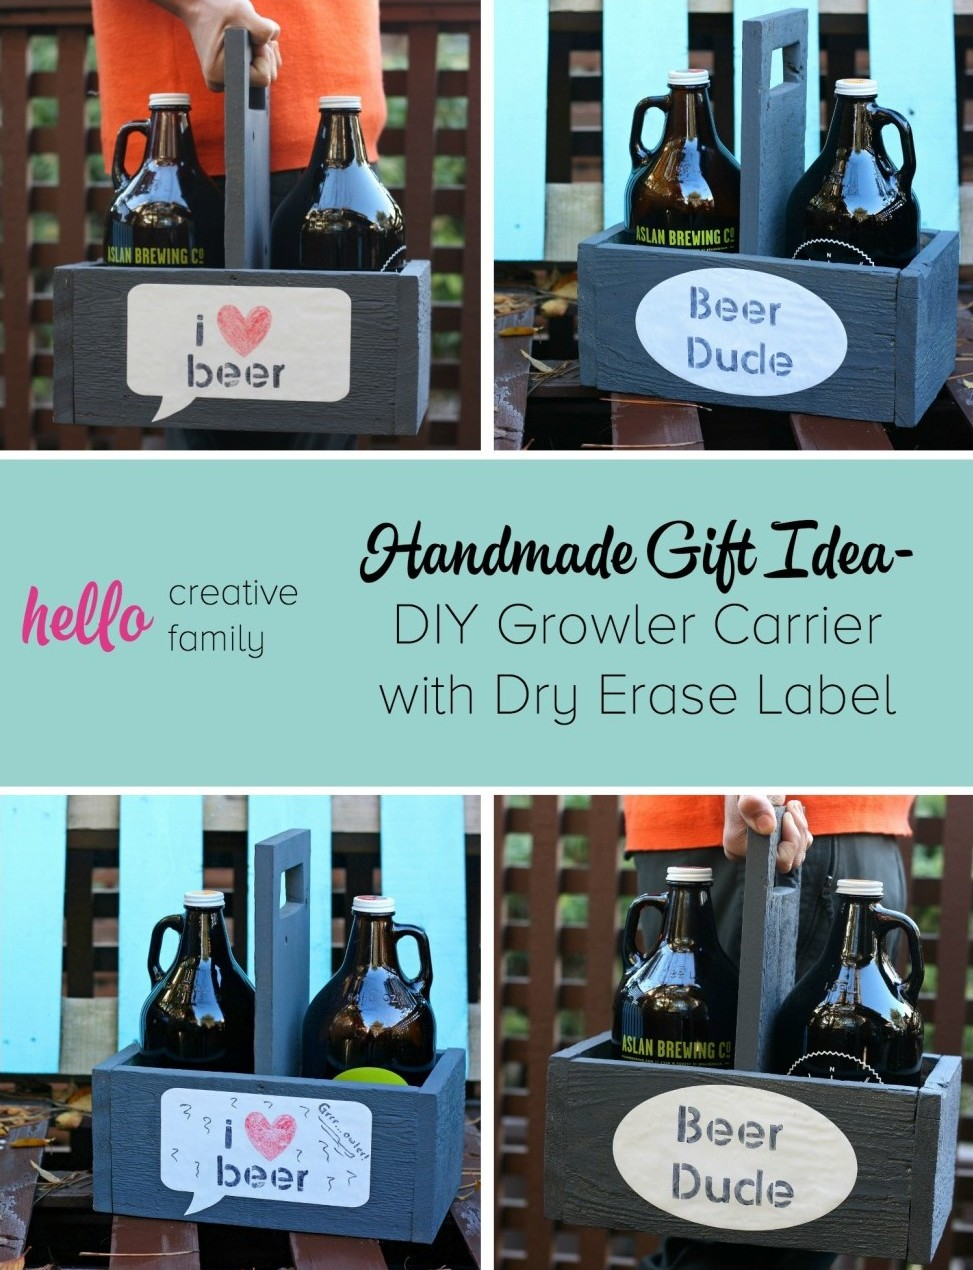 Handmade-Gift-Idea-DIY-Growler-Carrier-with-Dry-Erase-Label-e1448258923499